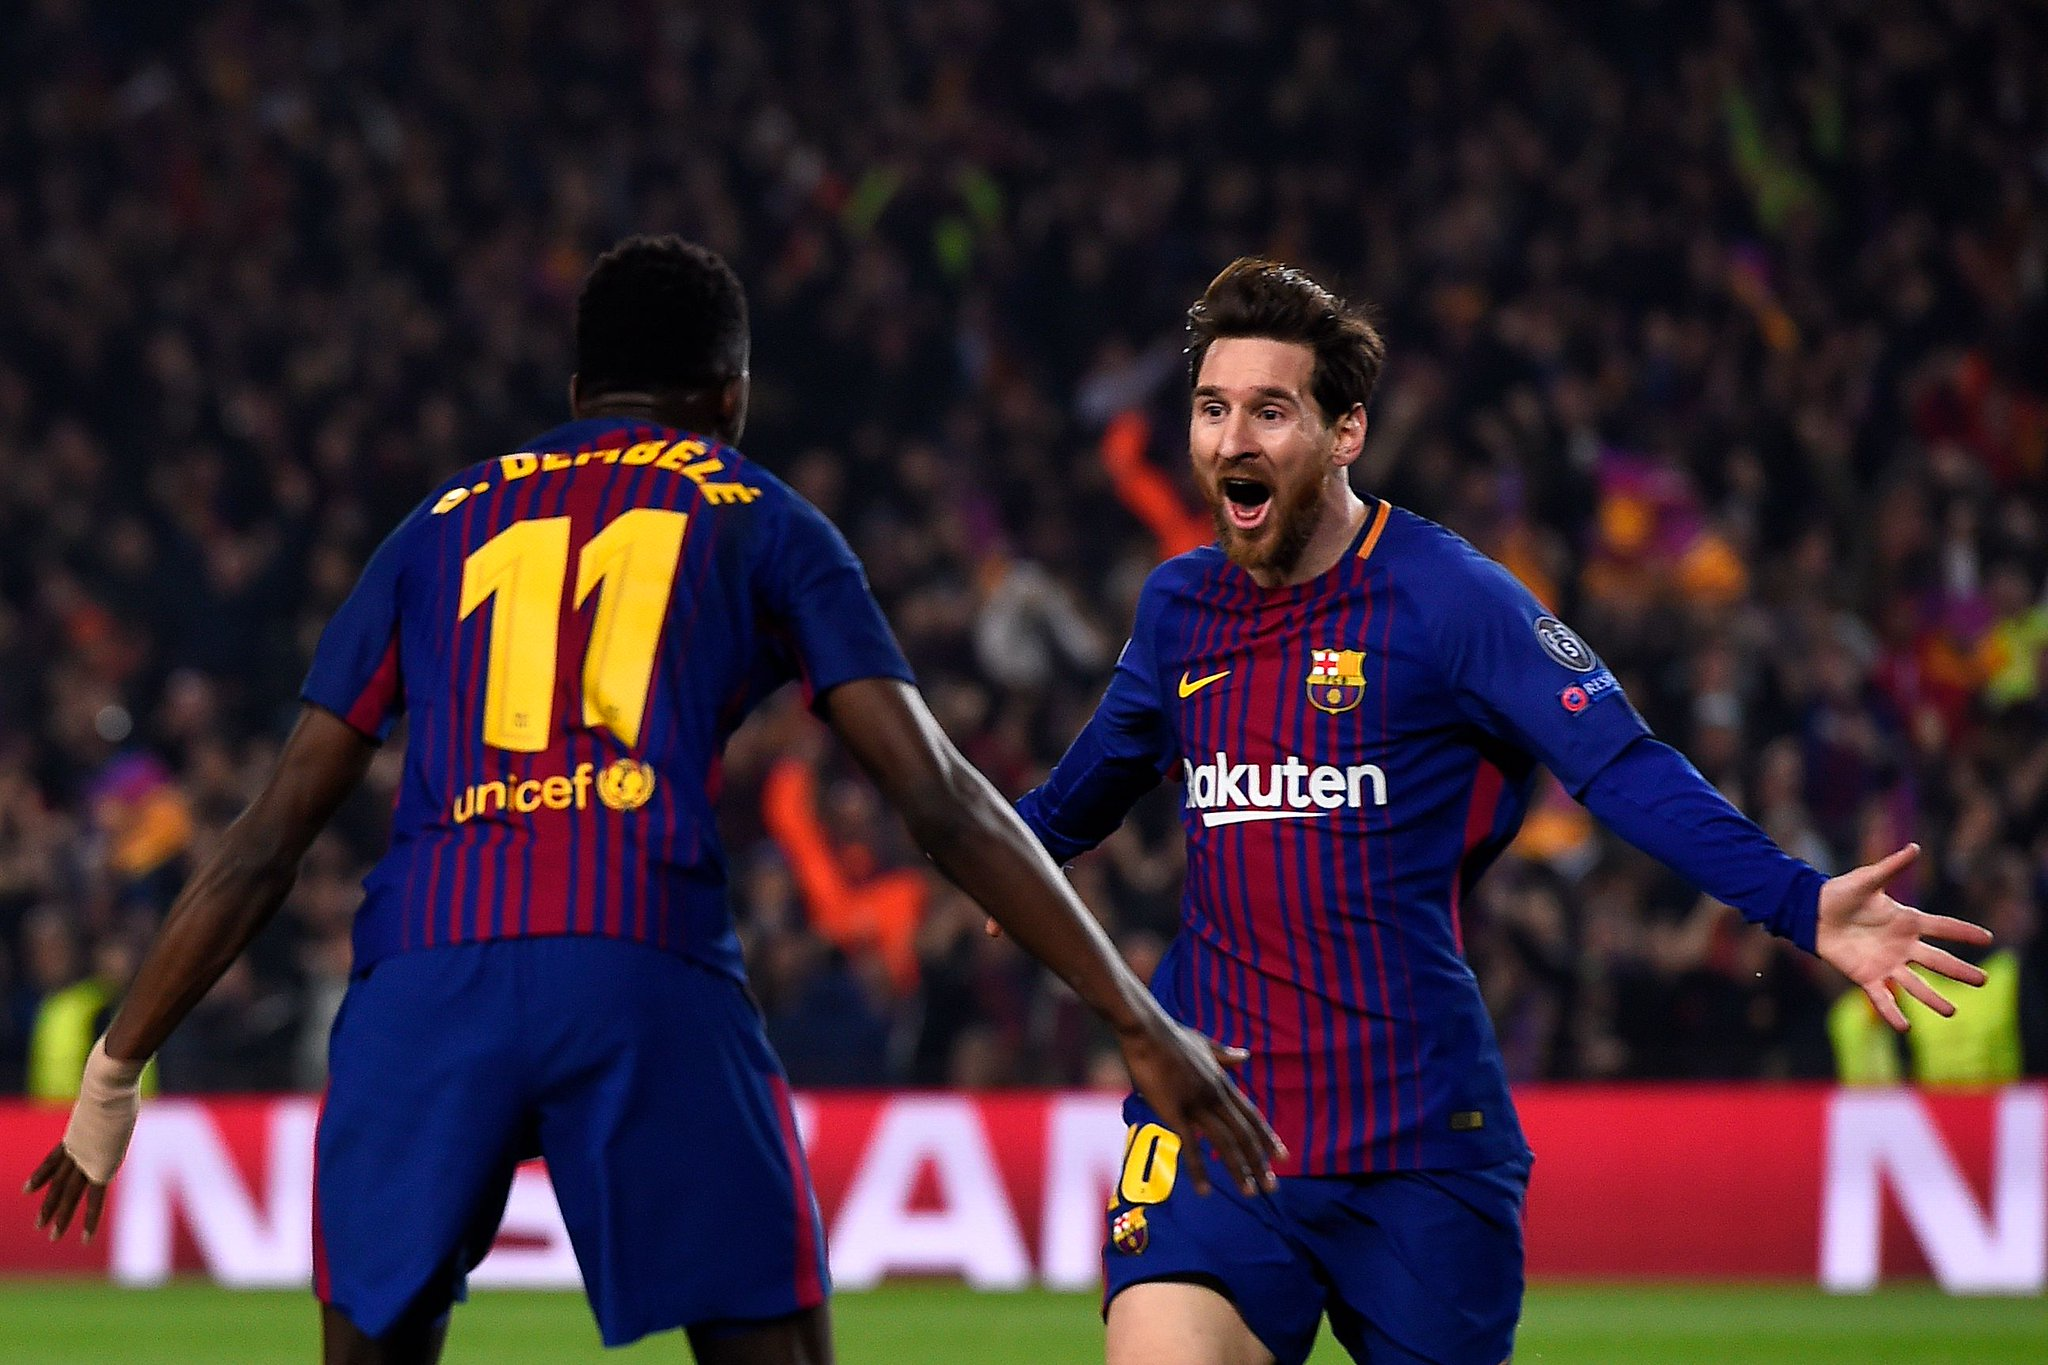 Okunowo Tips Barcelona For UCL Title After Win Over Chelsea